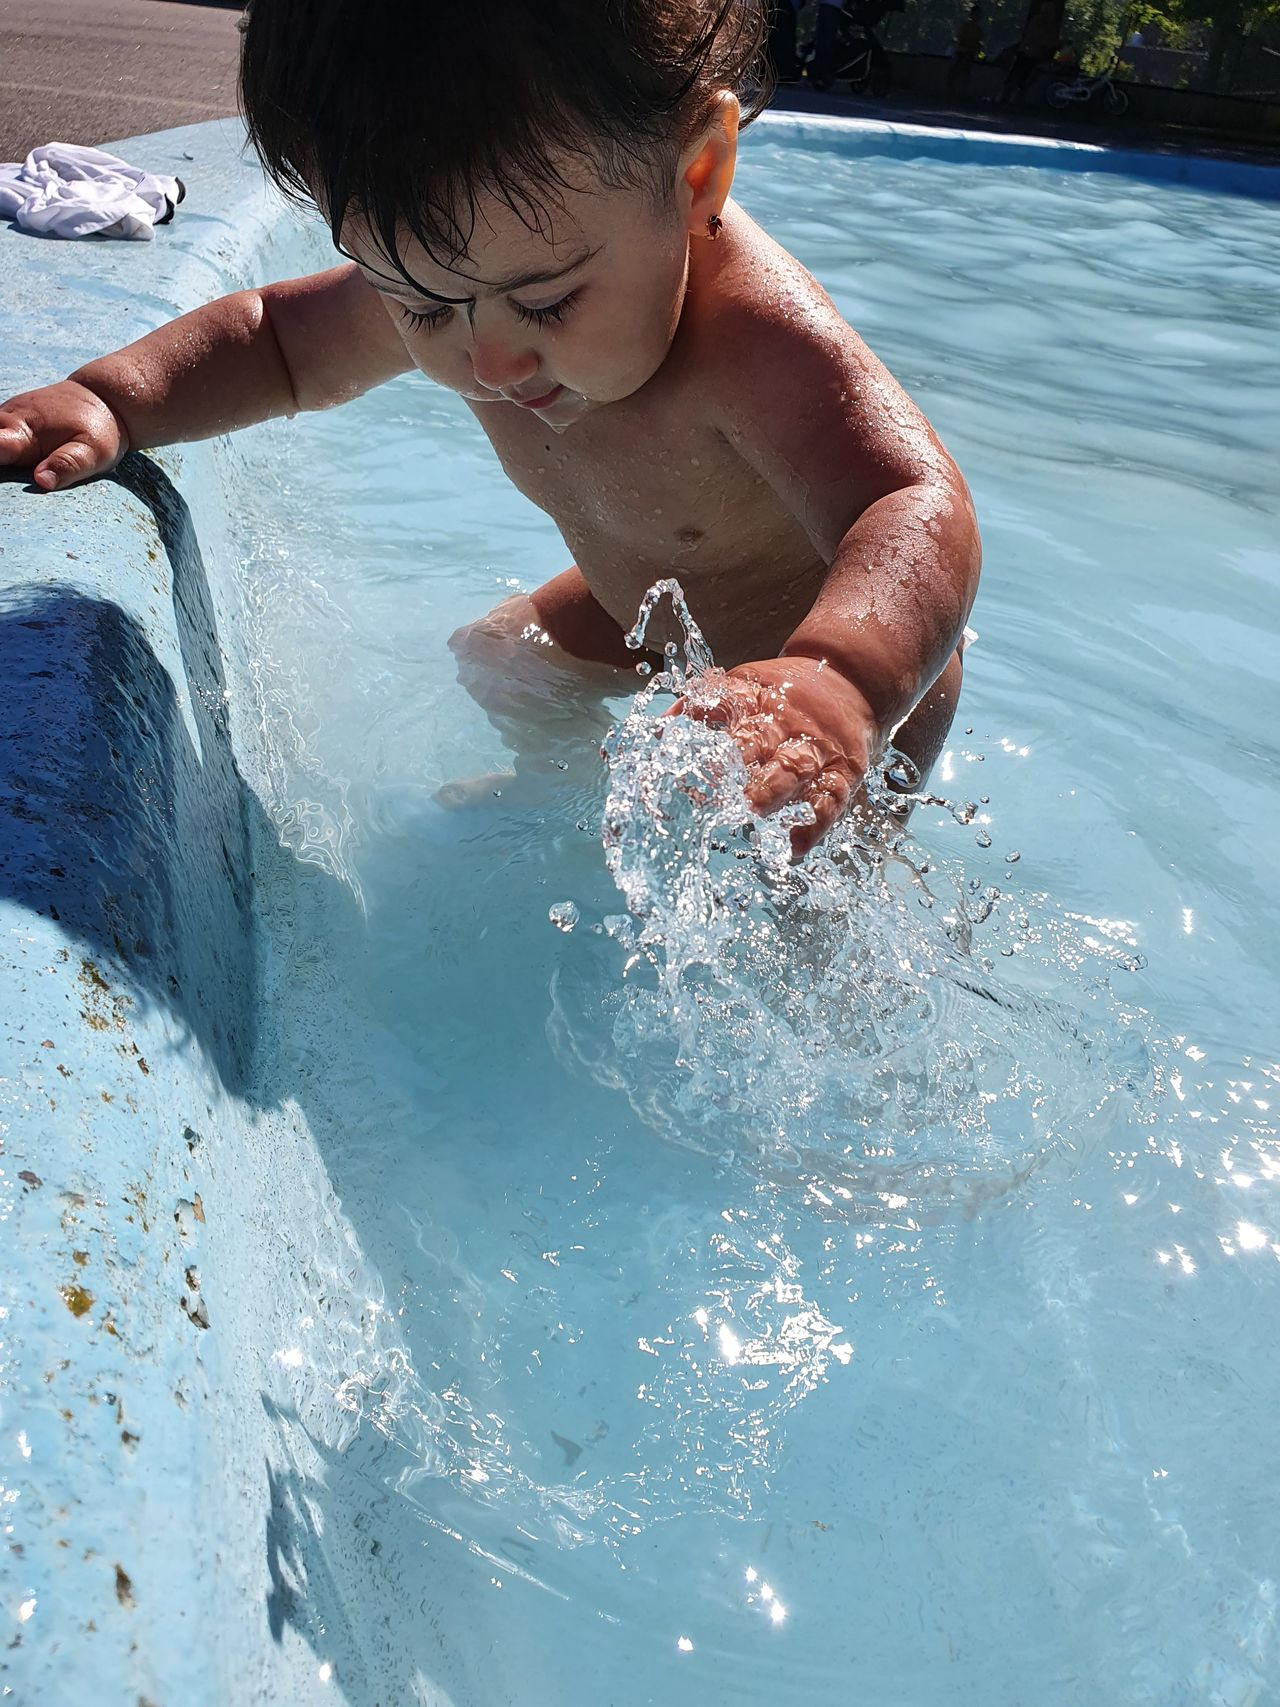 Page 11 Of Water Park Pictures Curated Photography On Eyeem